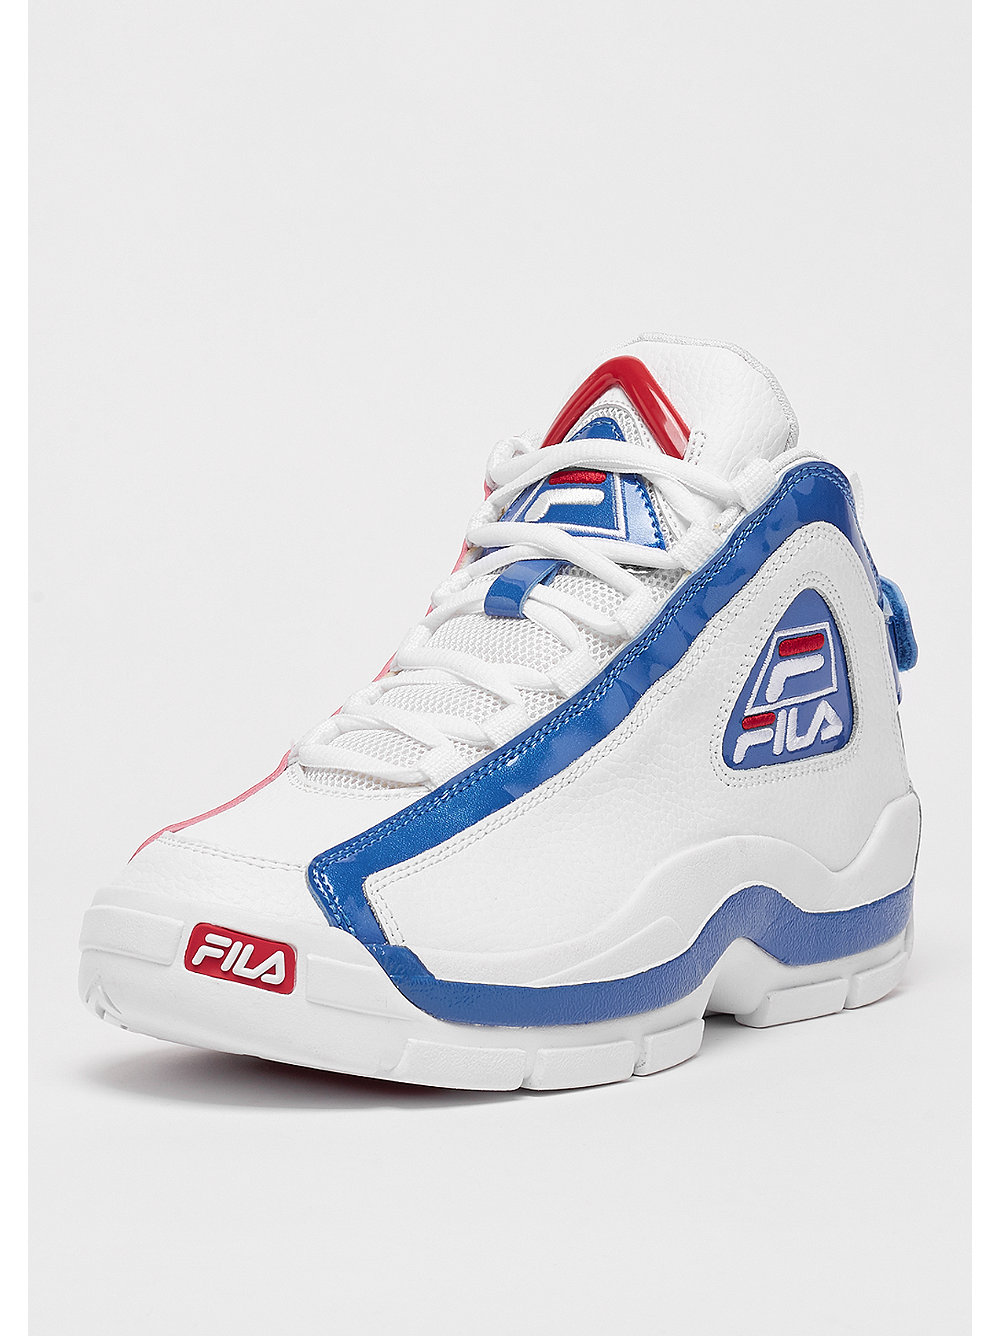 Snipes Celebrates 1998 with New Fila 96 Collaboration